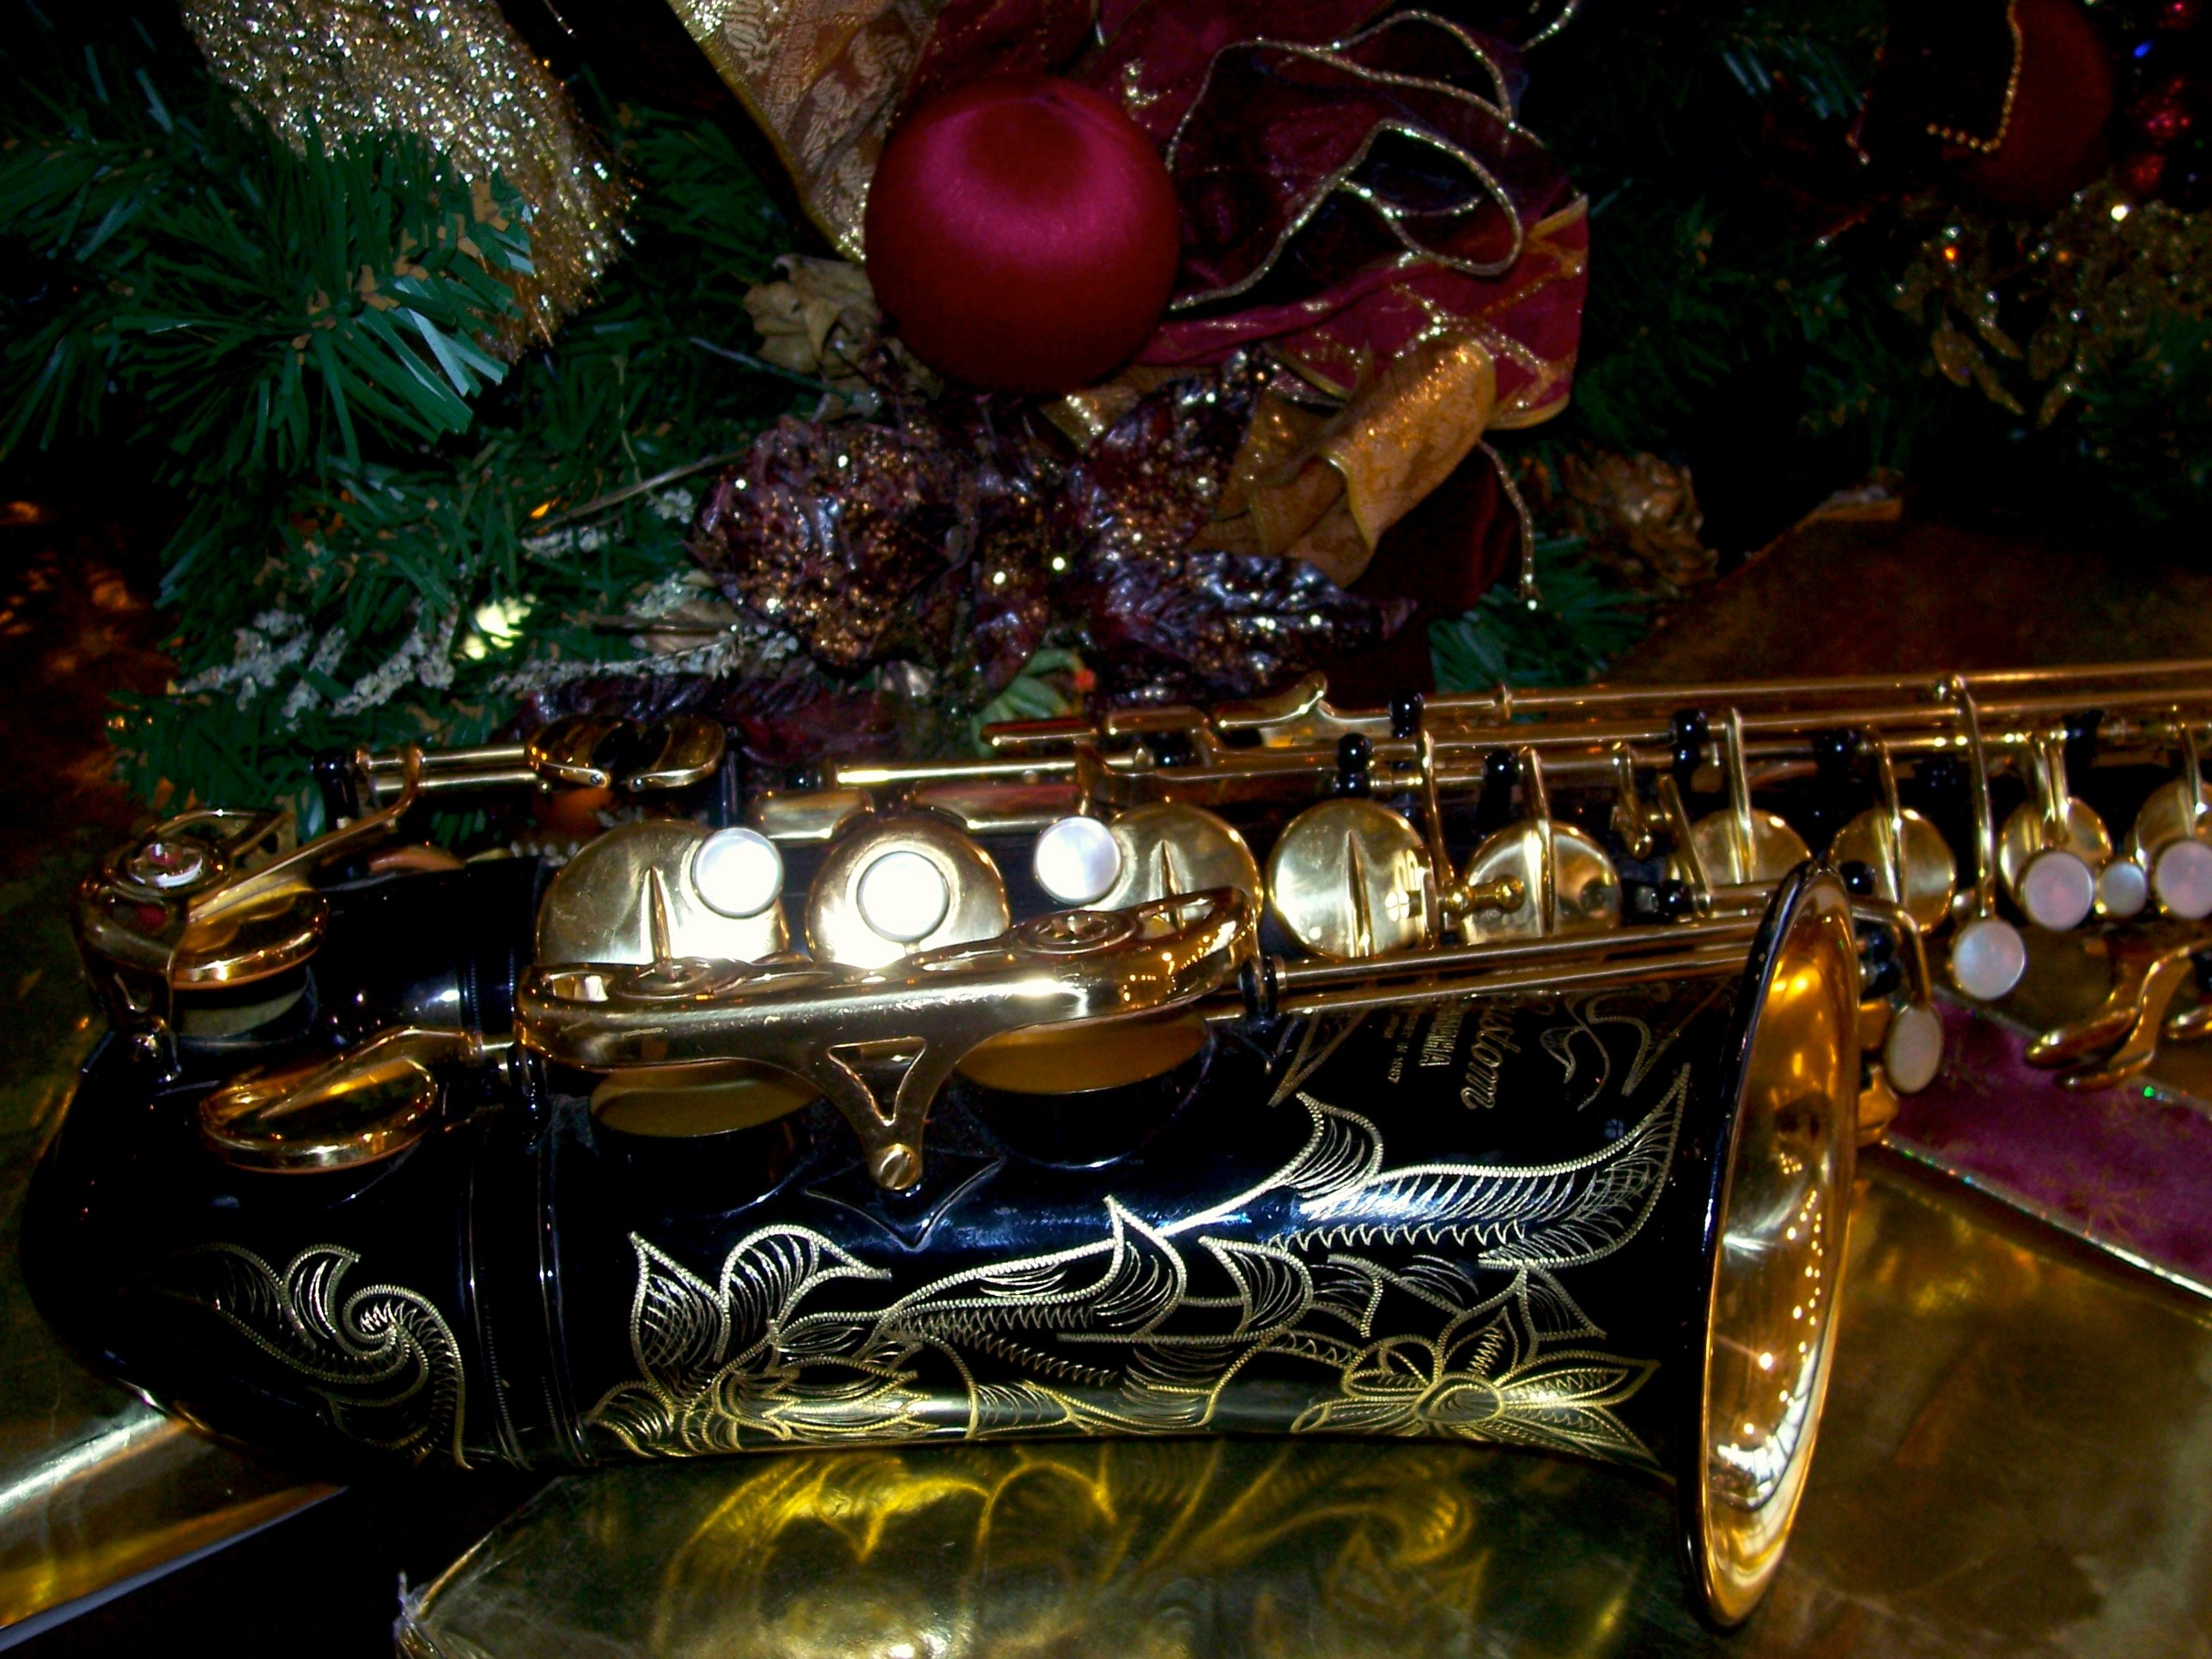 2576x1932 ... Free Christmas Saxophone Wallpaper / Screensavers - Dark Picture - For  Cell Phones - Black Yamaha